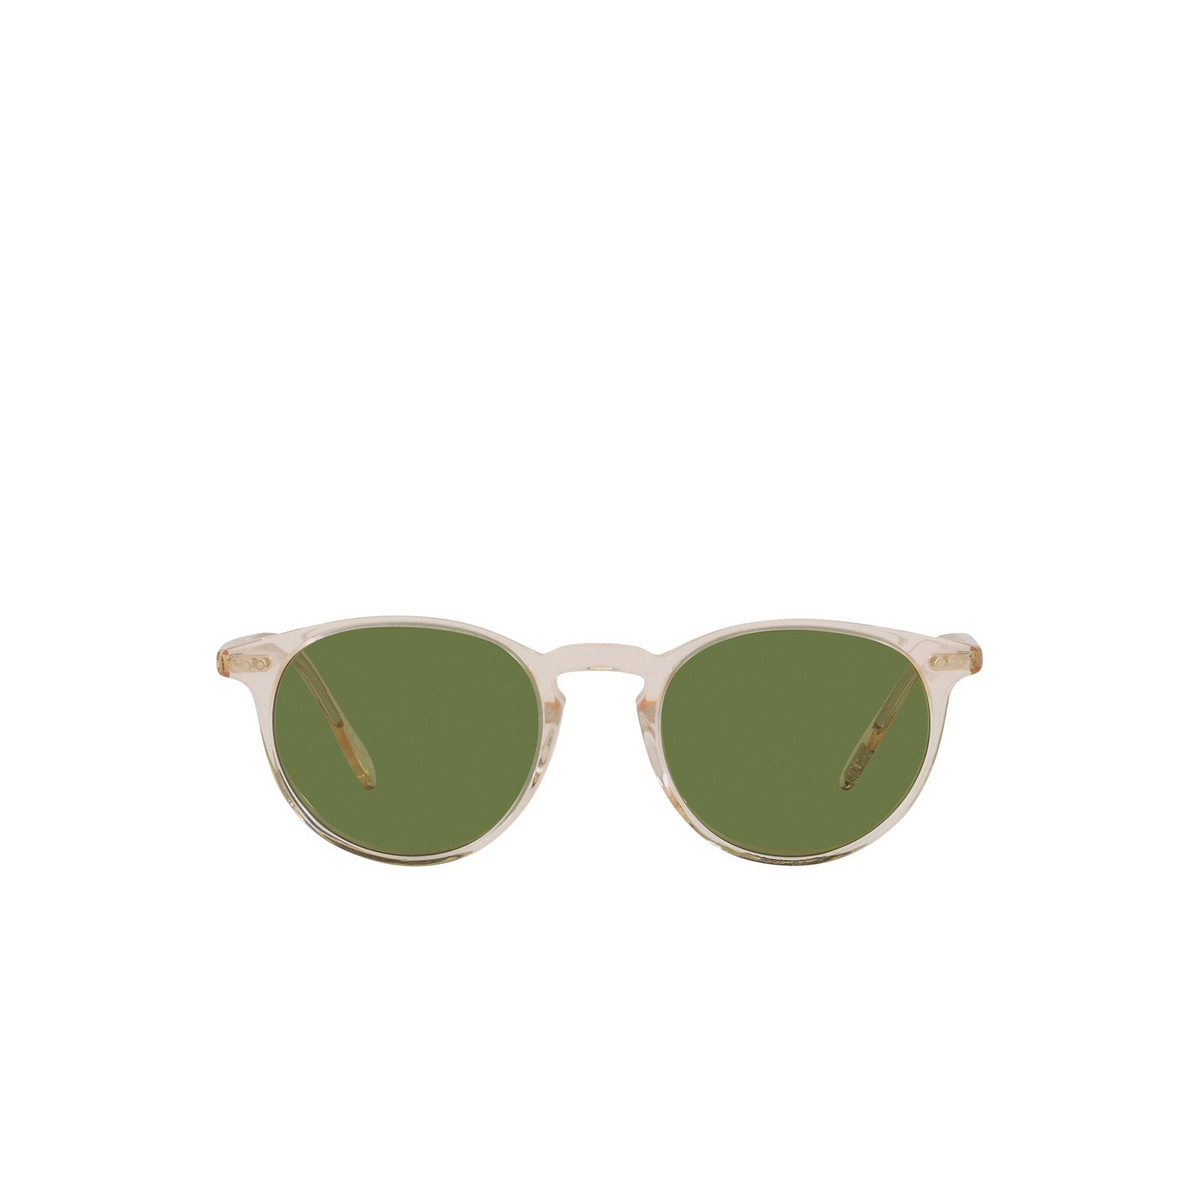 Oliver Peoples® Round Sunglasses: Riley Sun OV5004SU color Buff 109452 - front view.